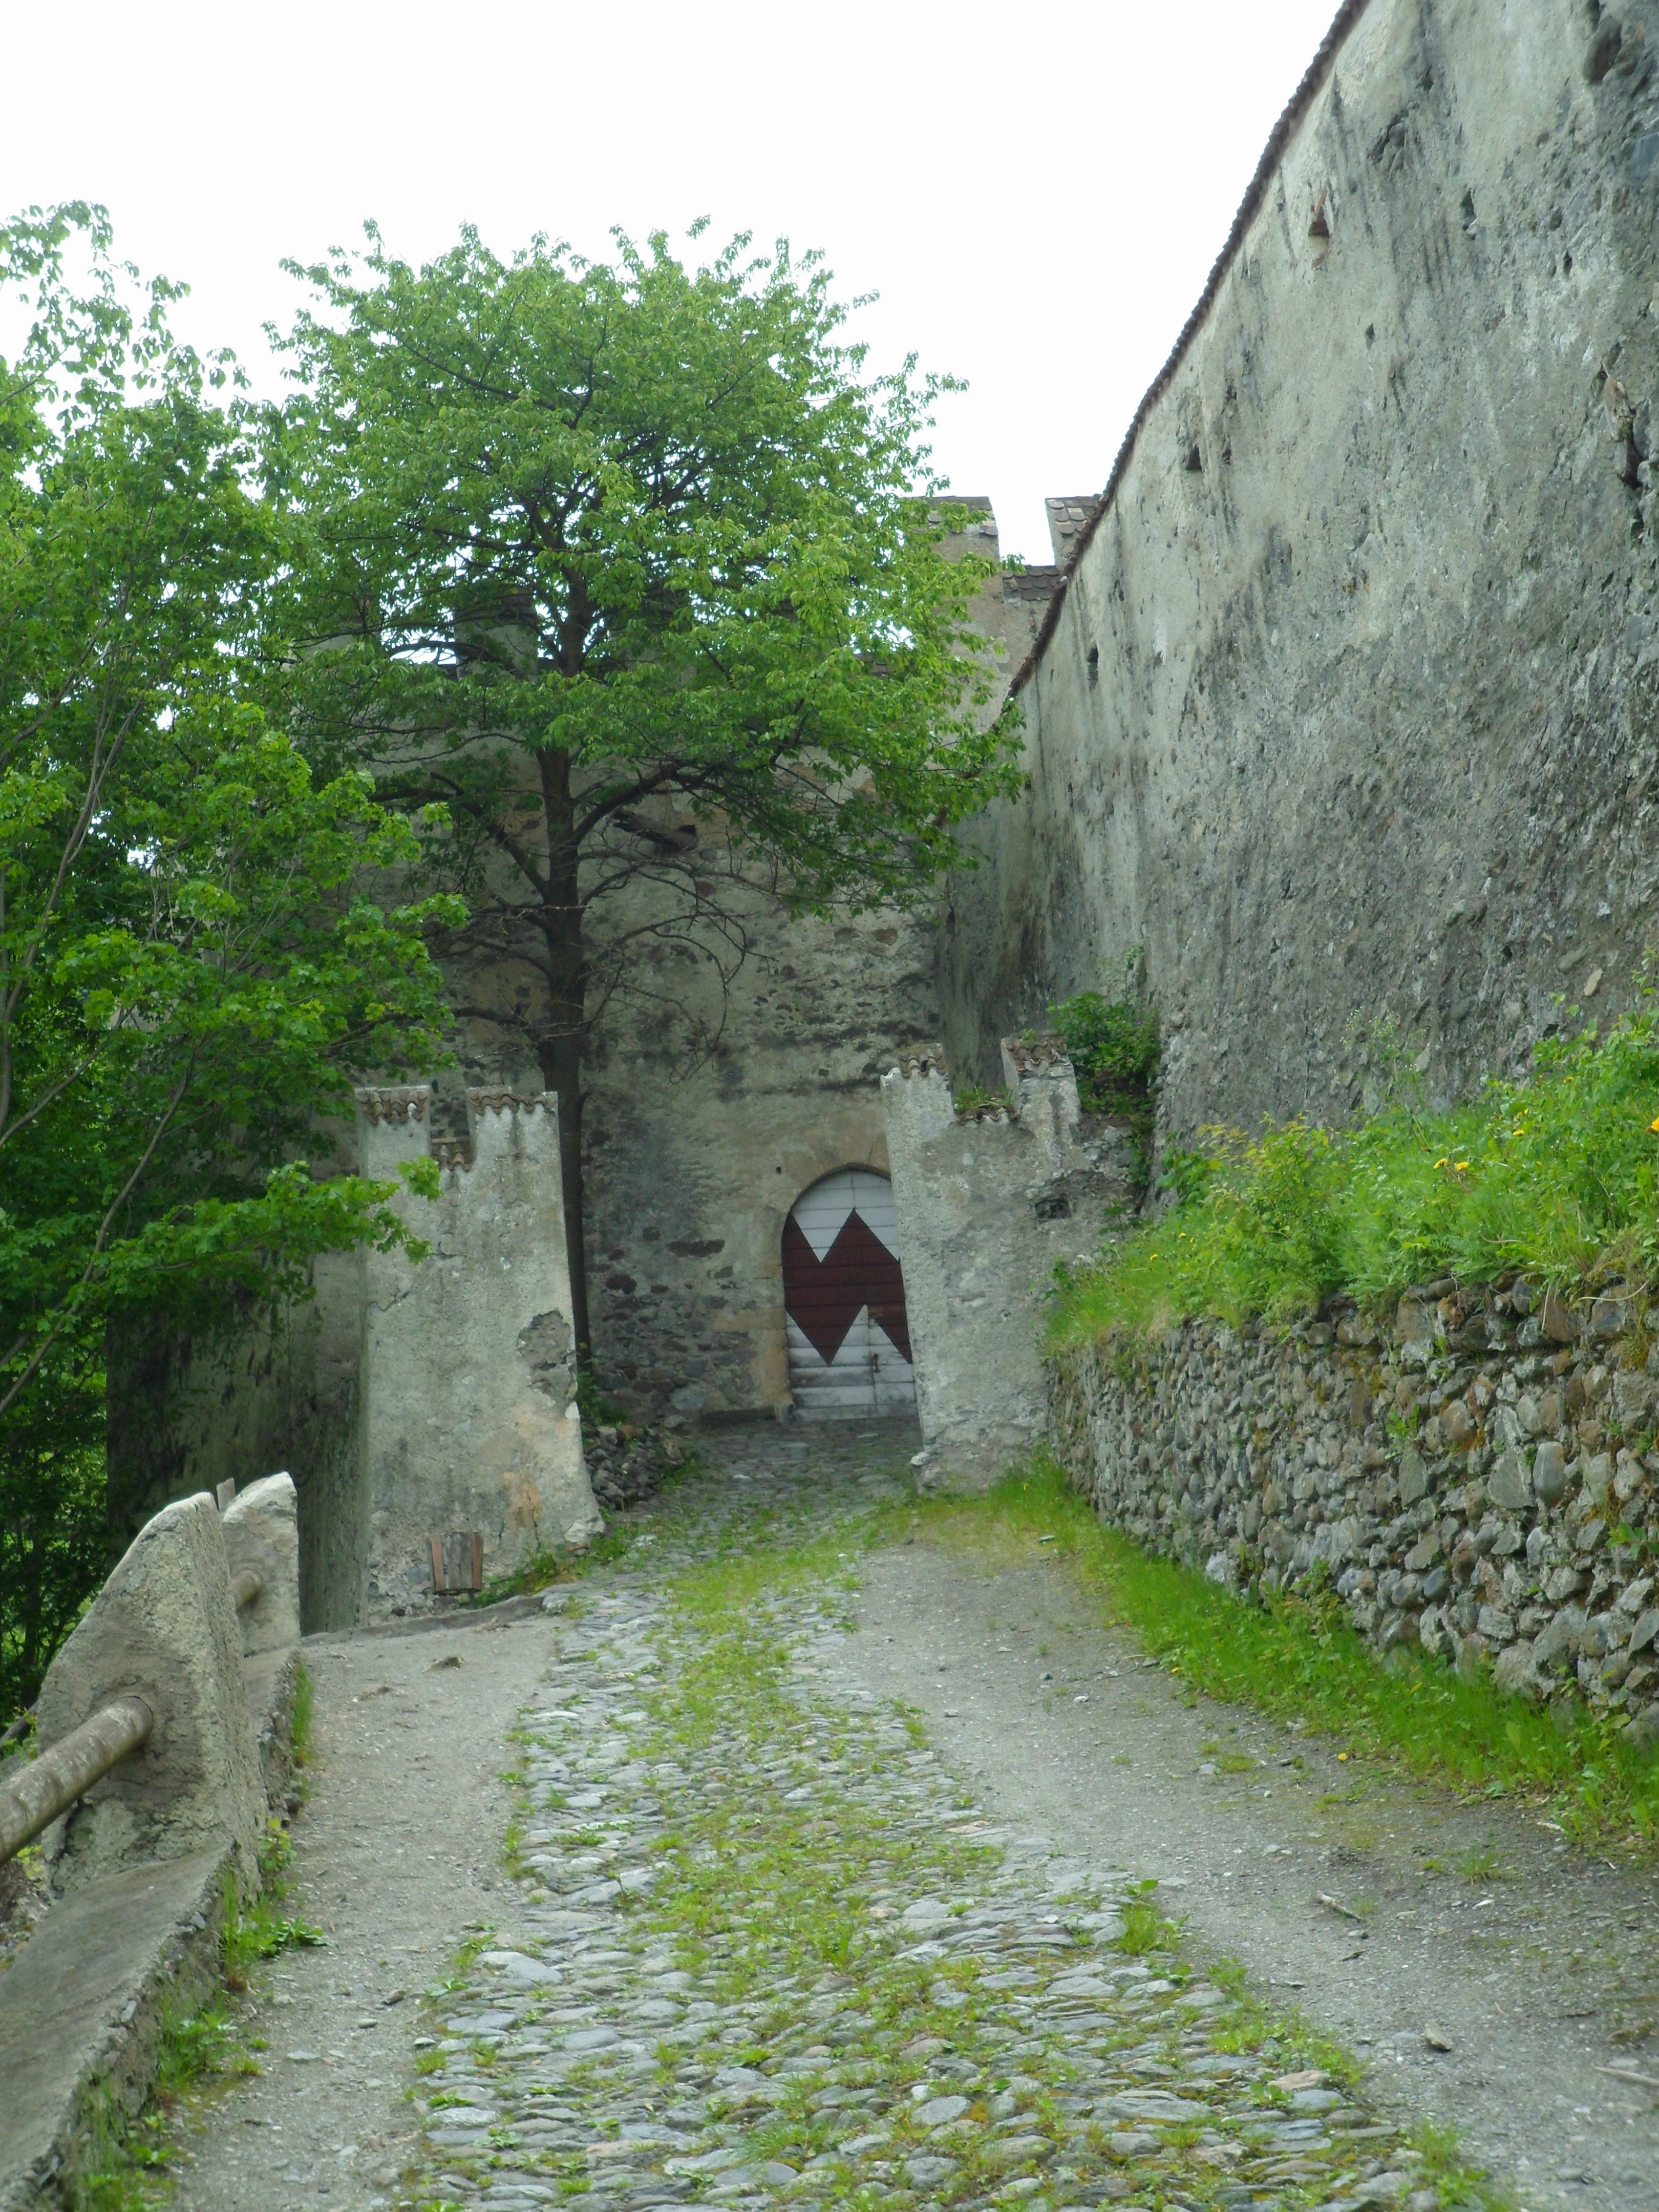 Gravel path leading up to a castle gate projecting five metres out from the tall stone wall at right